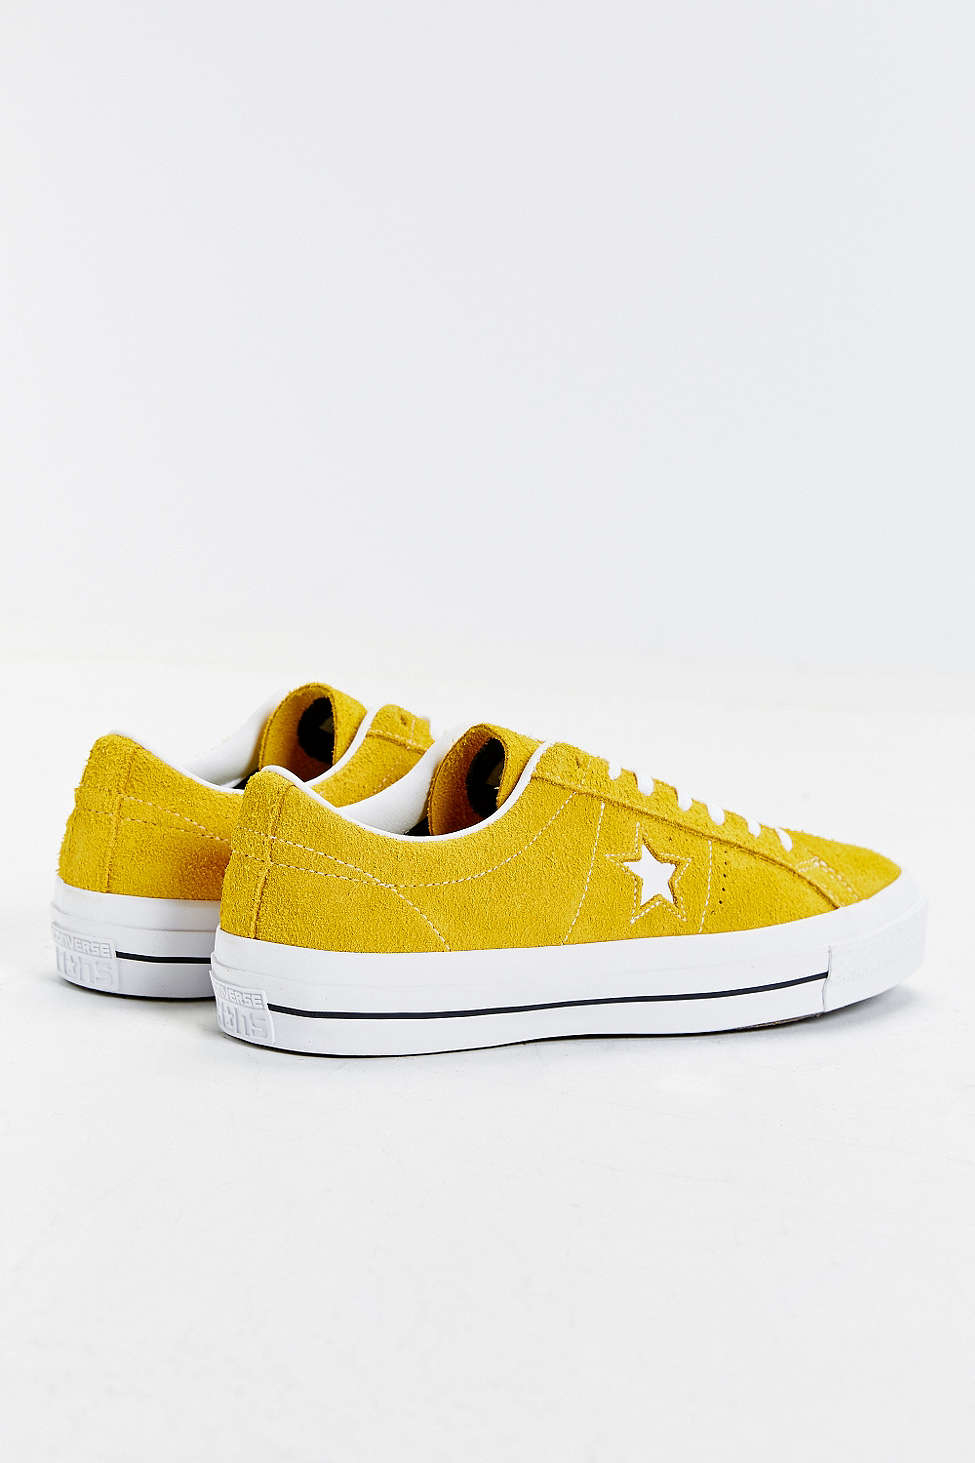 Converse Cons One Star Pro Sneaker in Yellow for Men